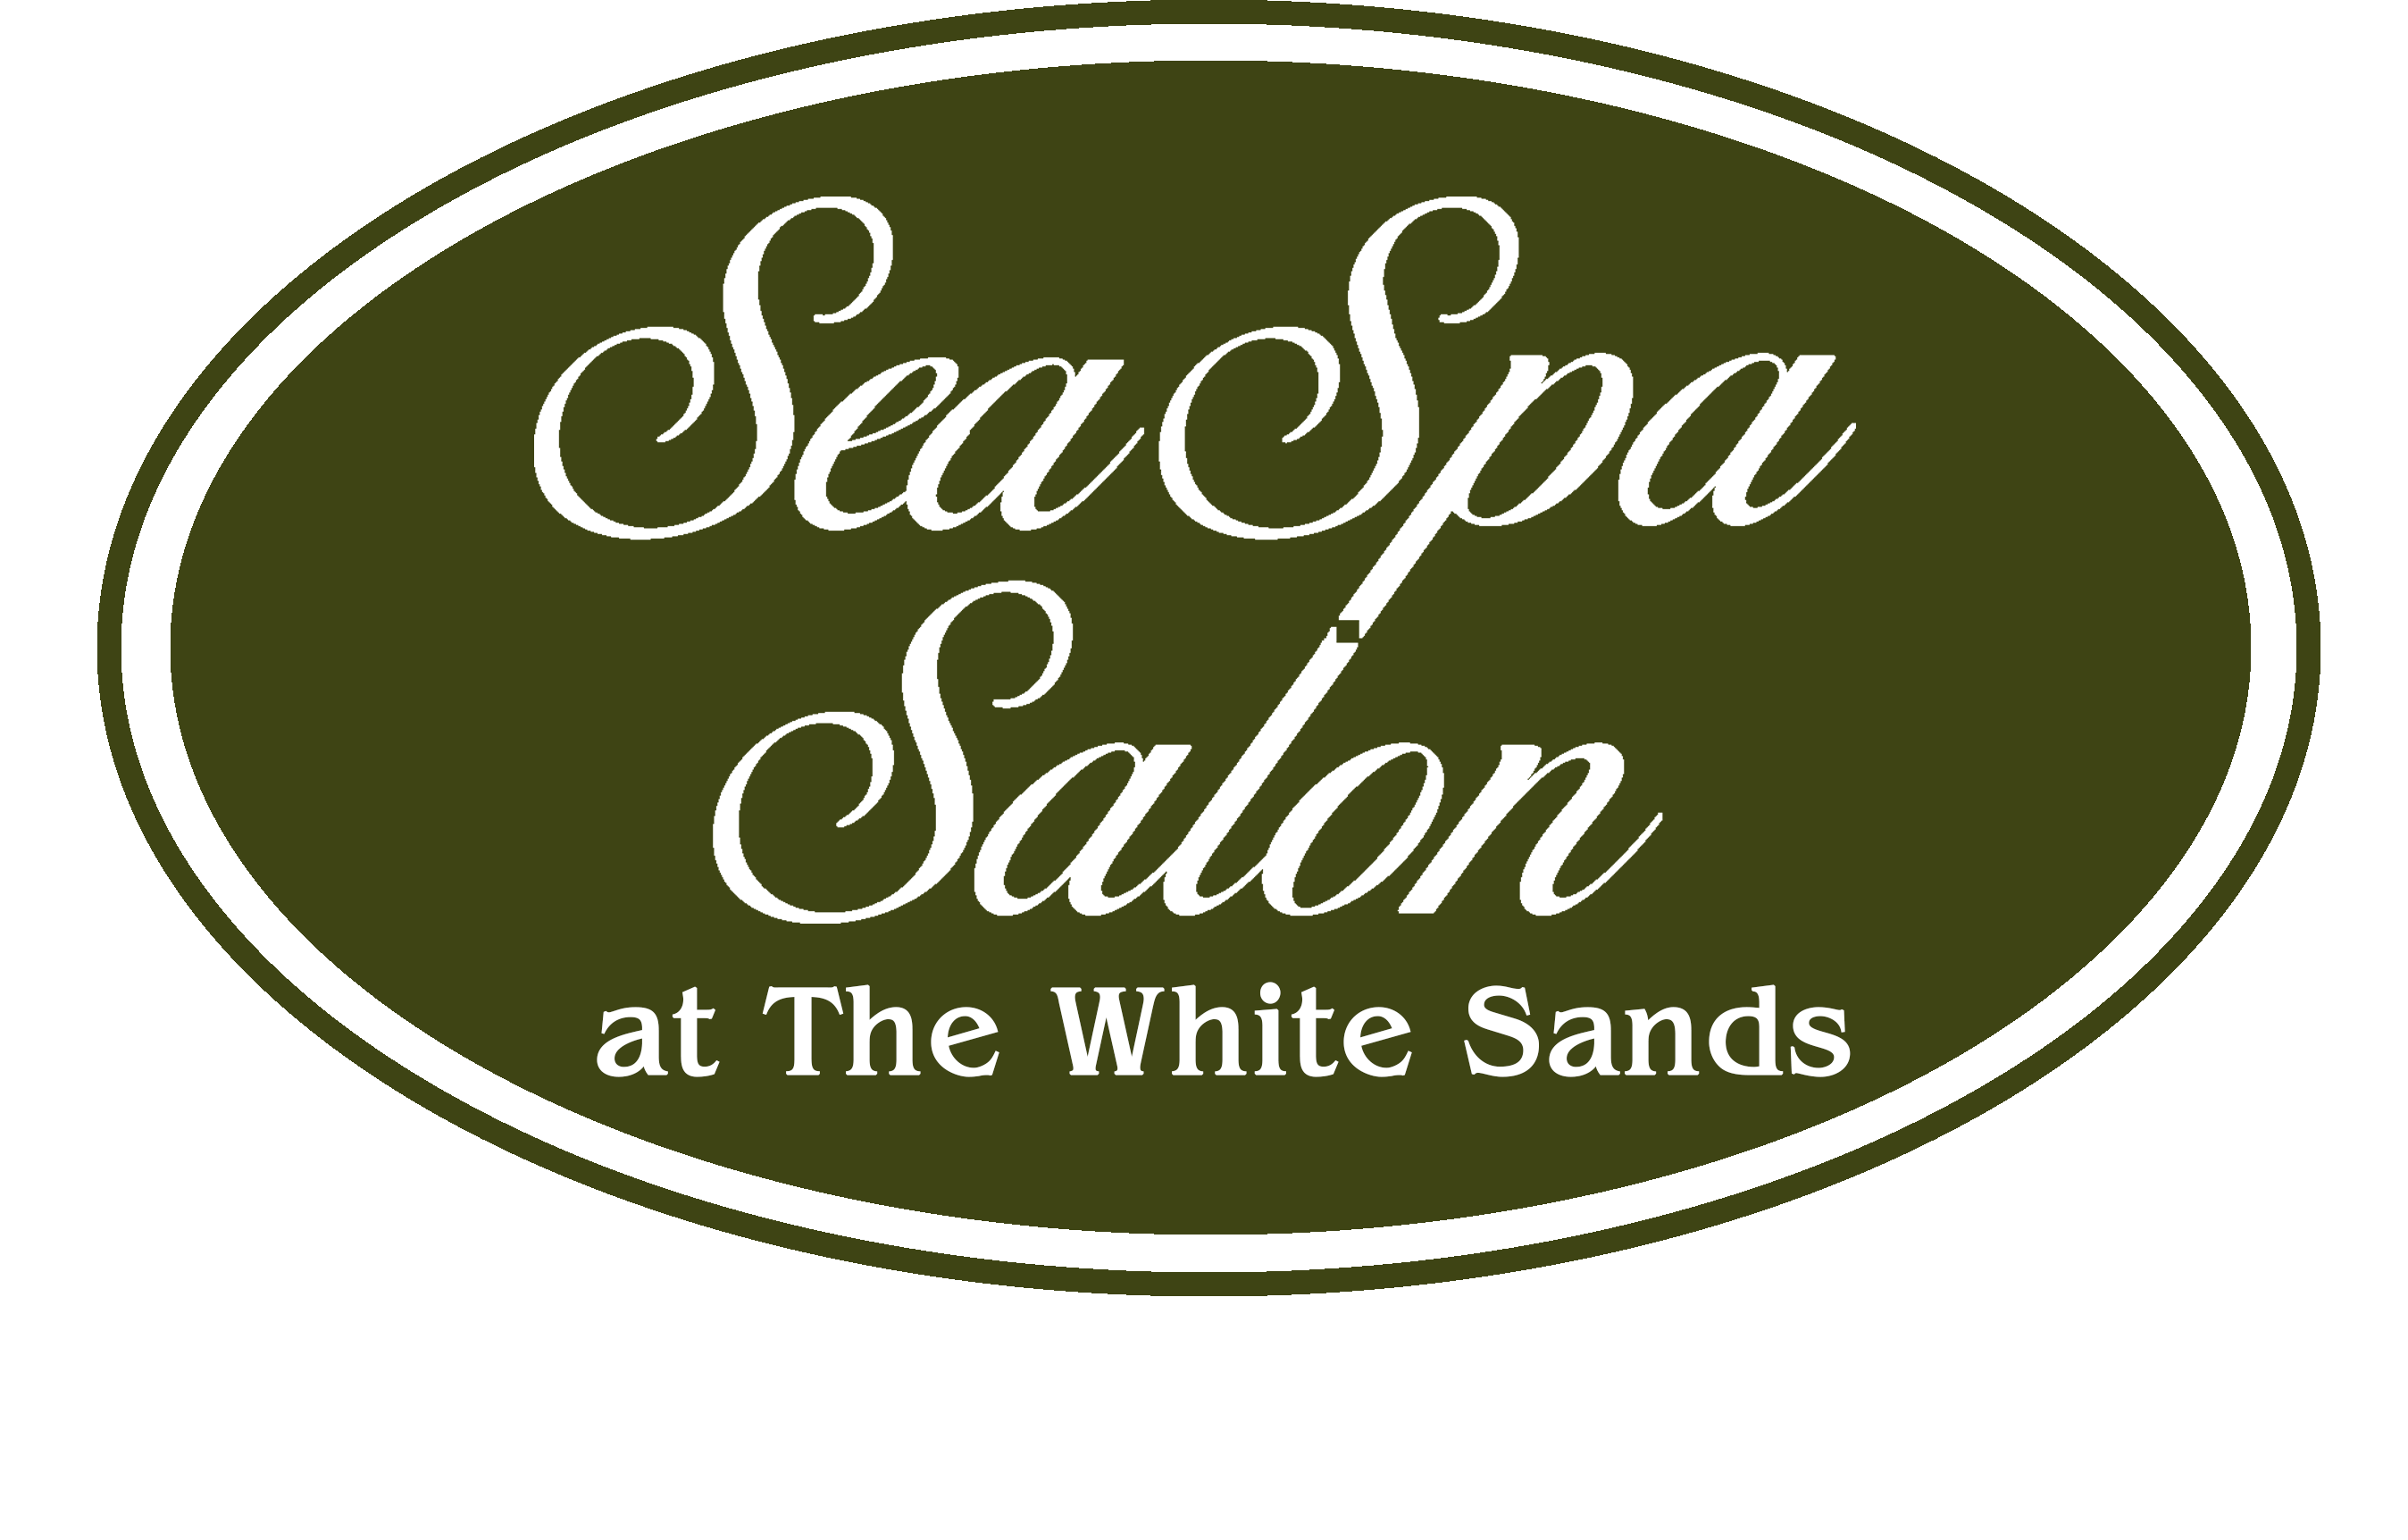 SeaSpa & Salon at the White Sands